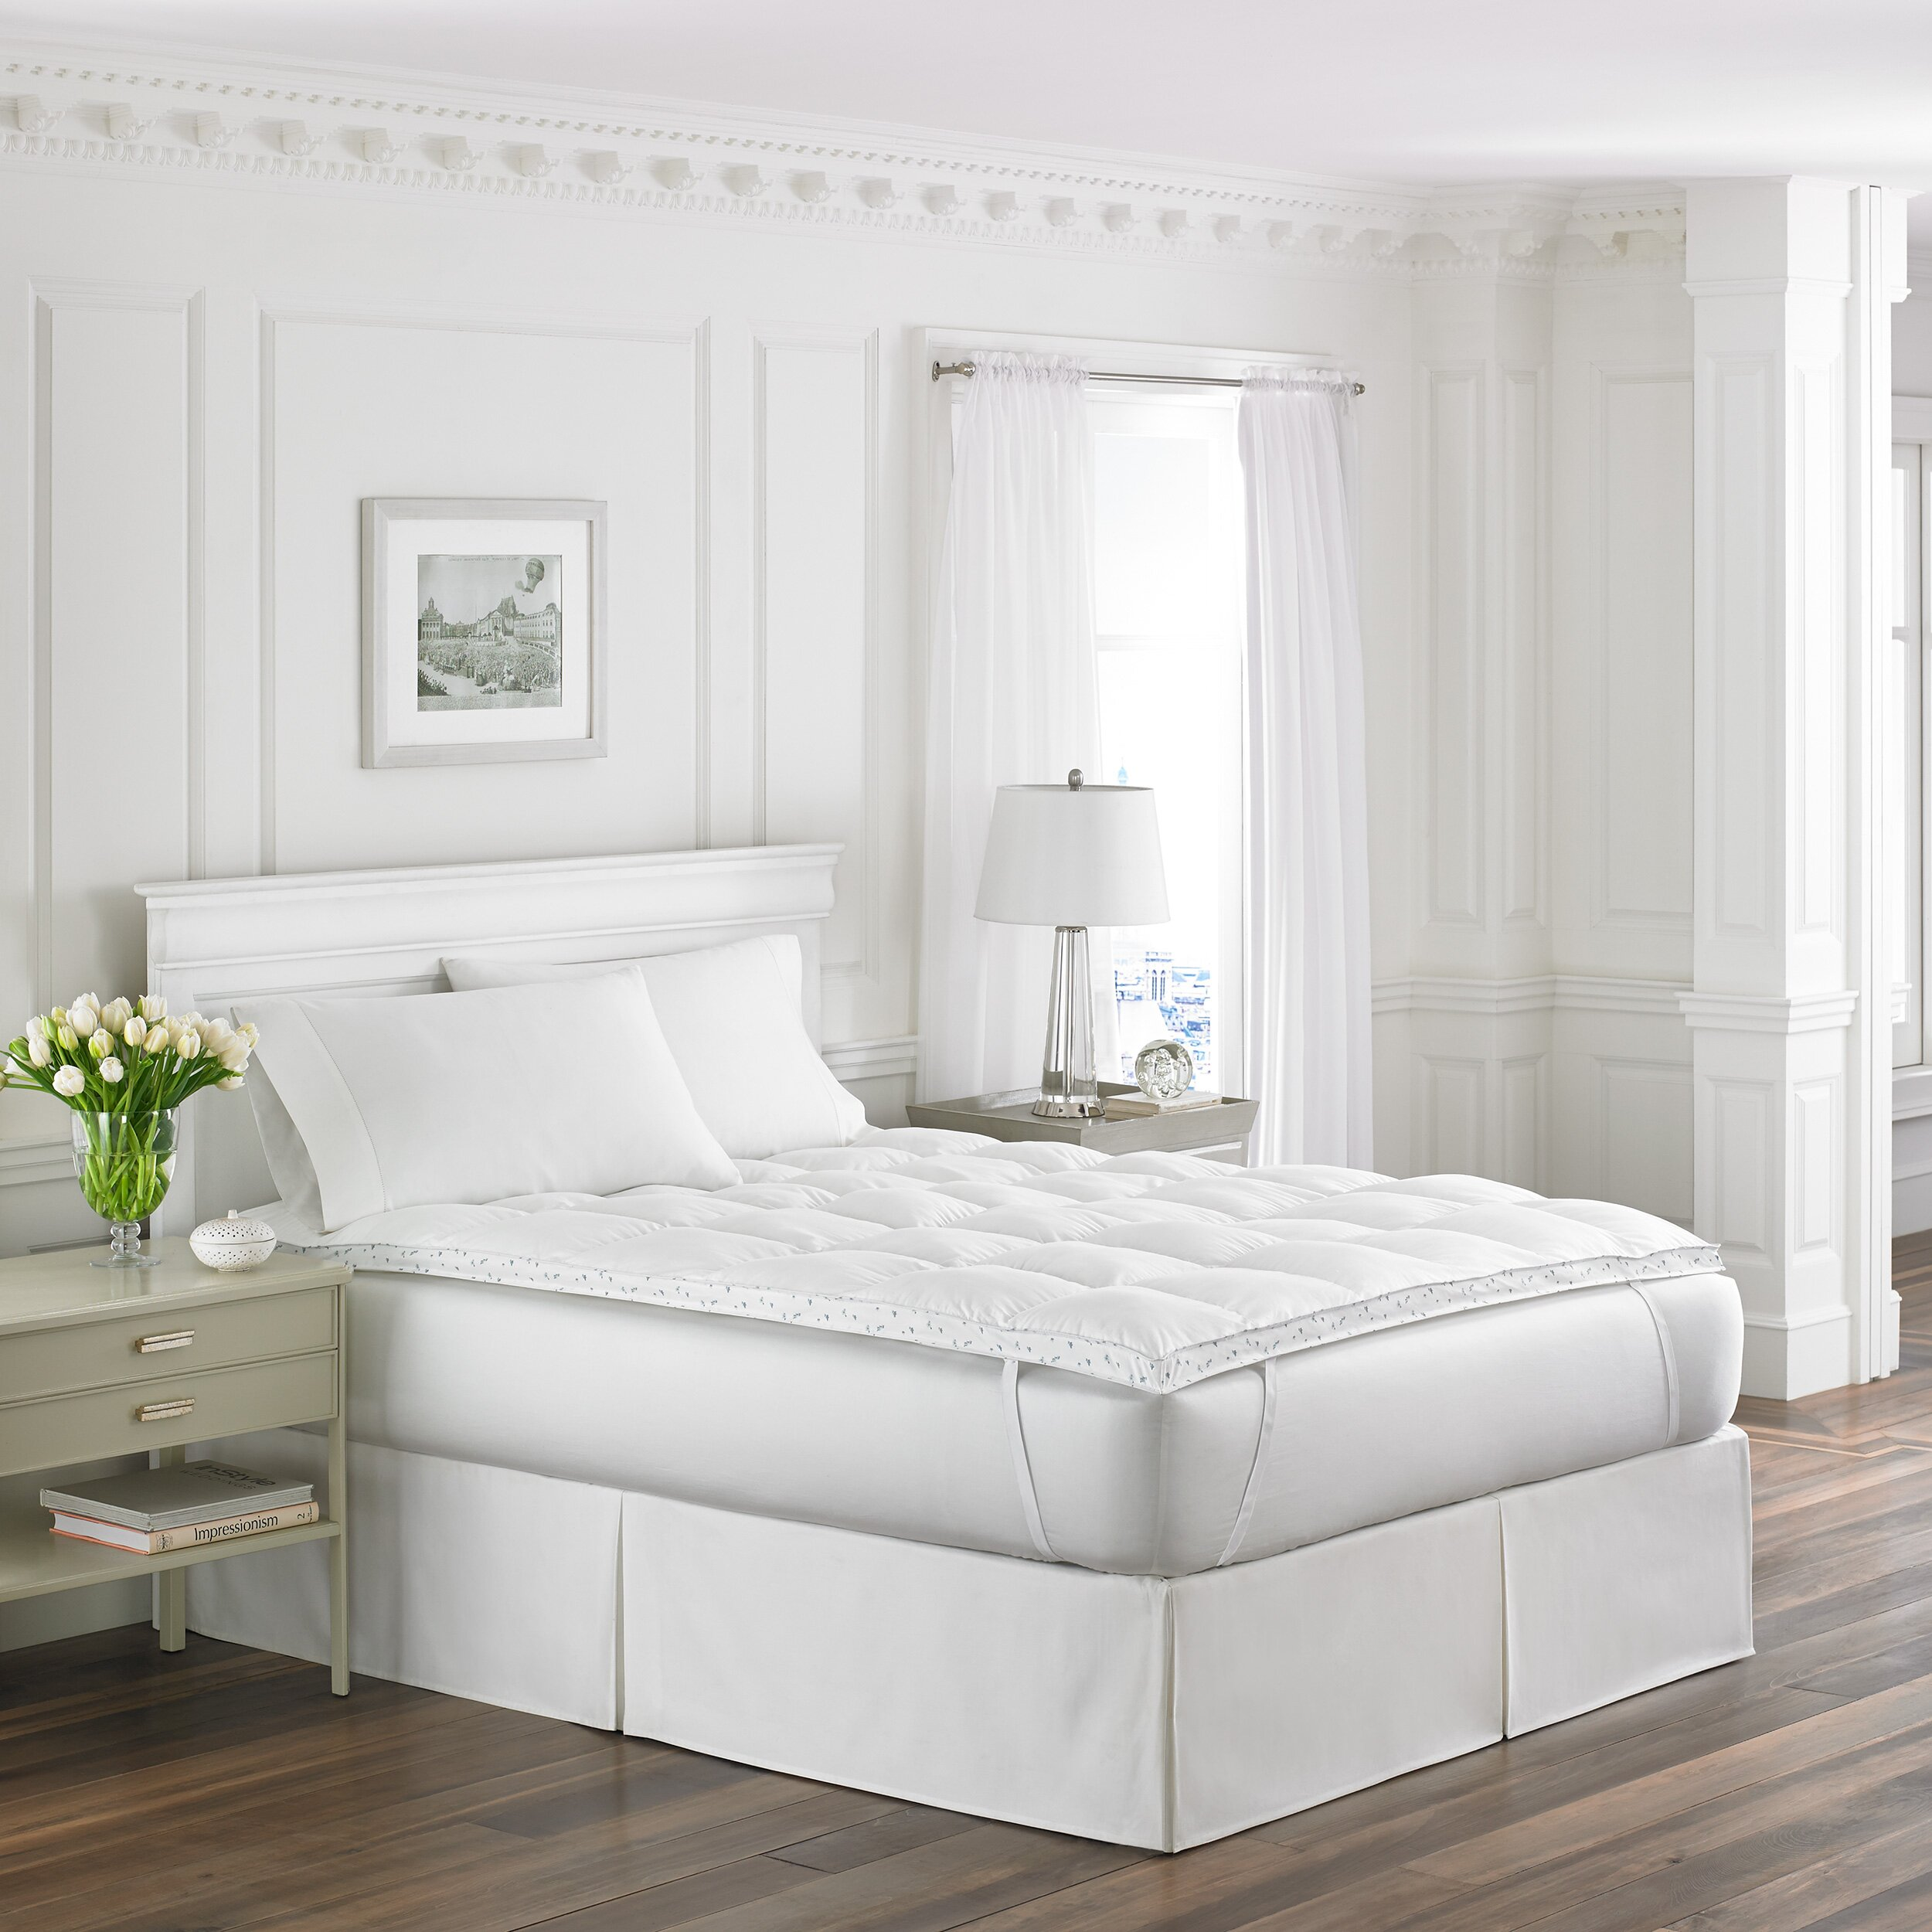 Laura Ashley Bedroom Wallpaper Laura Ashley Home Abbeville Fiber Bed Reviews Wayfair